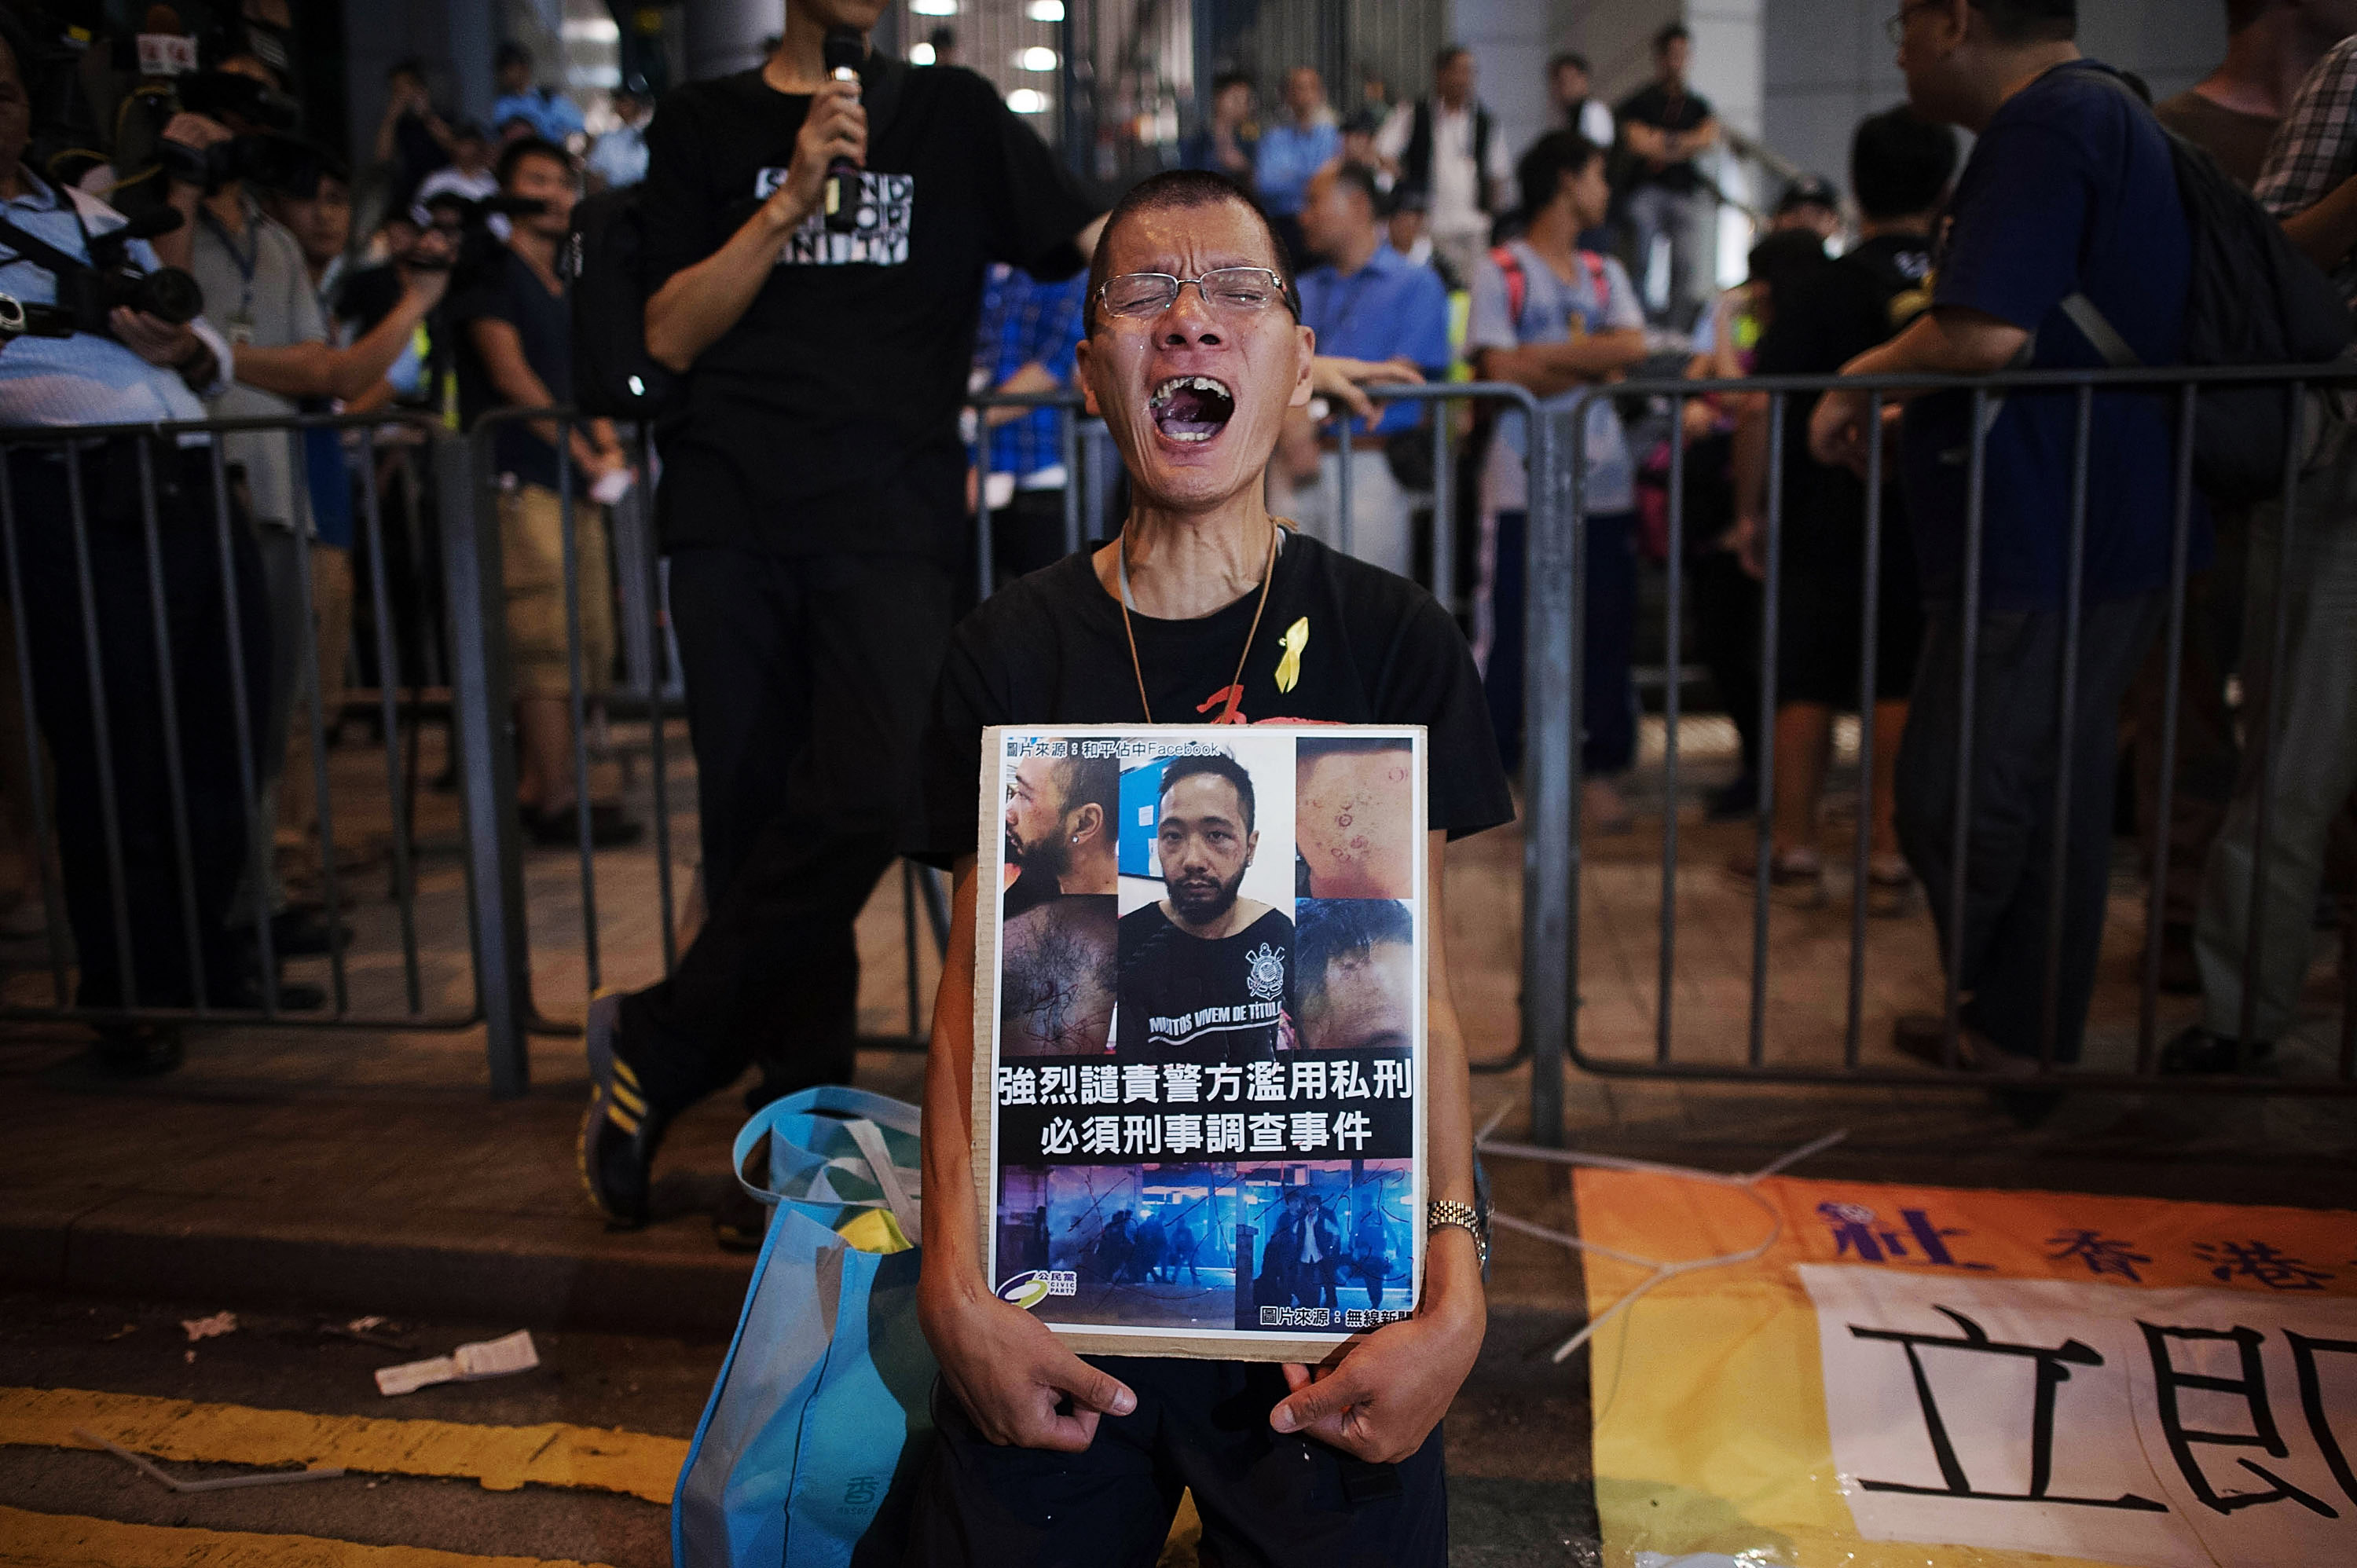 A man, a friend of activist Ken Tsang, who got kicked and beaten by police officers, shouts as he kneels on a street outside of the Hong Kong Police Headquarters in Wan Chai district in Hong Kong on Oct. 15, 2014